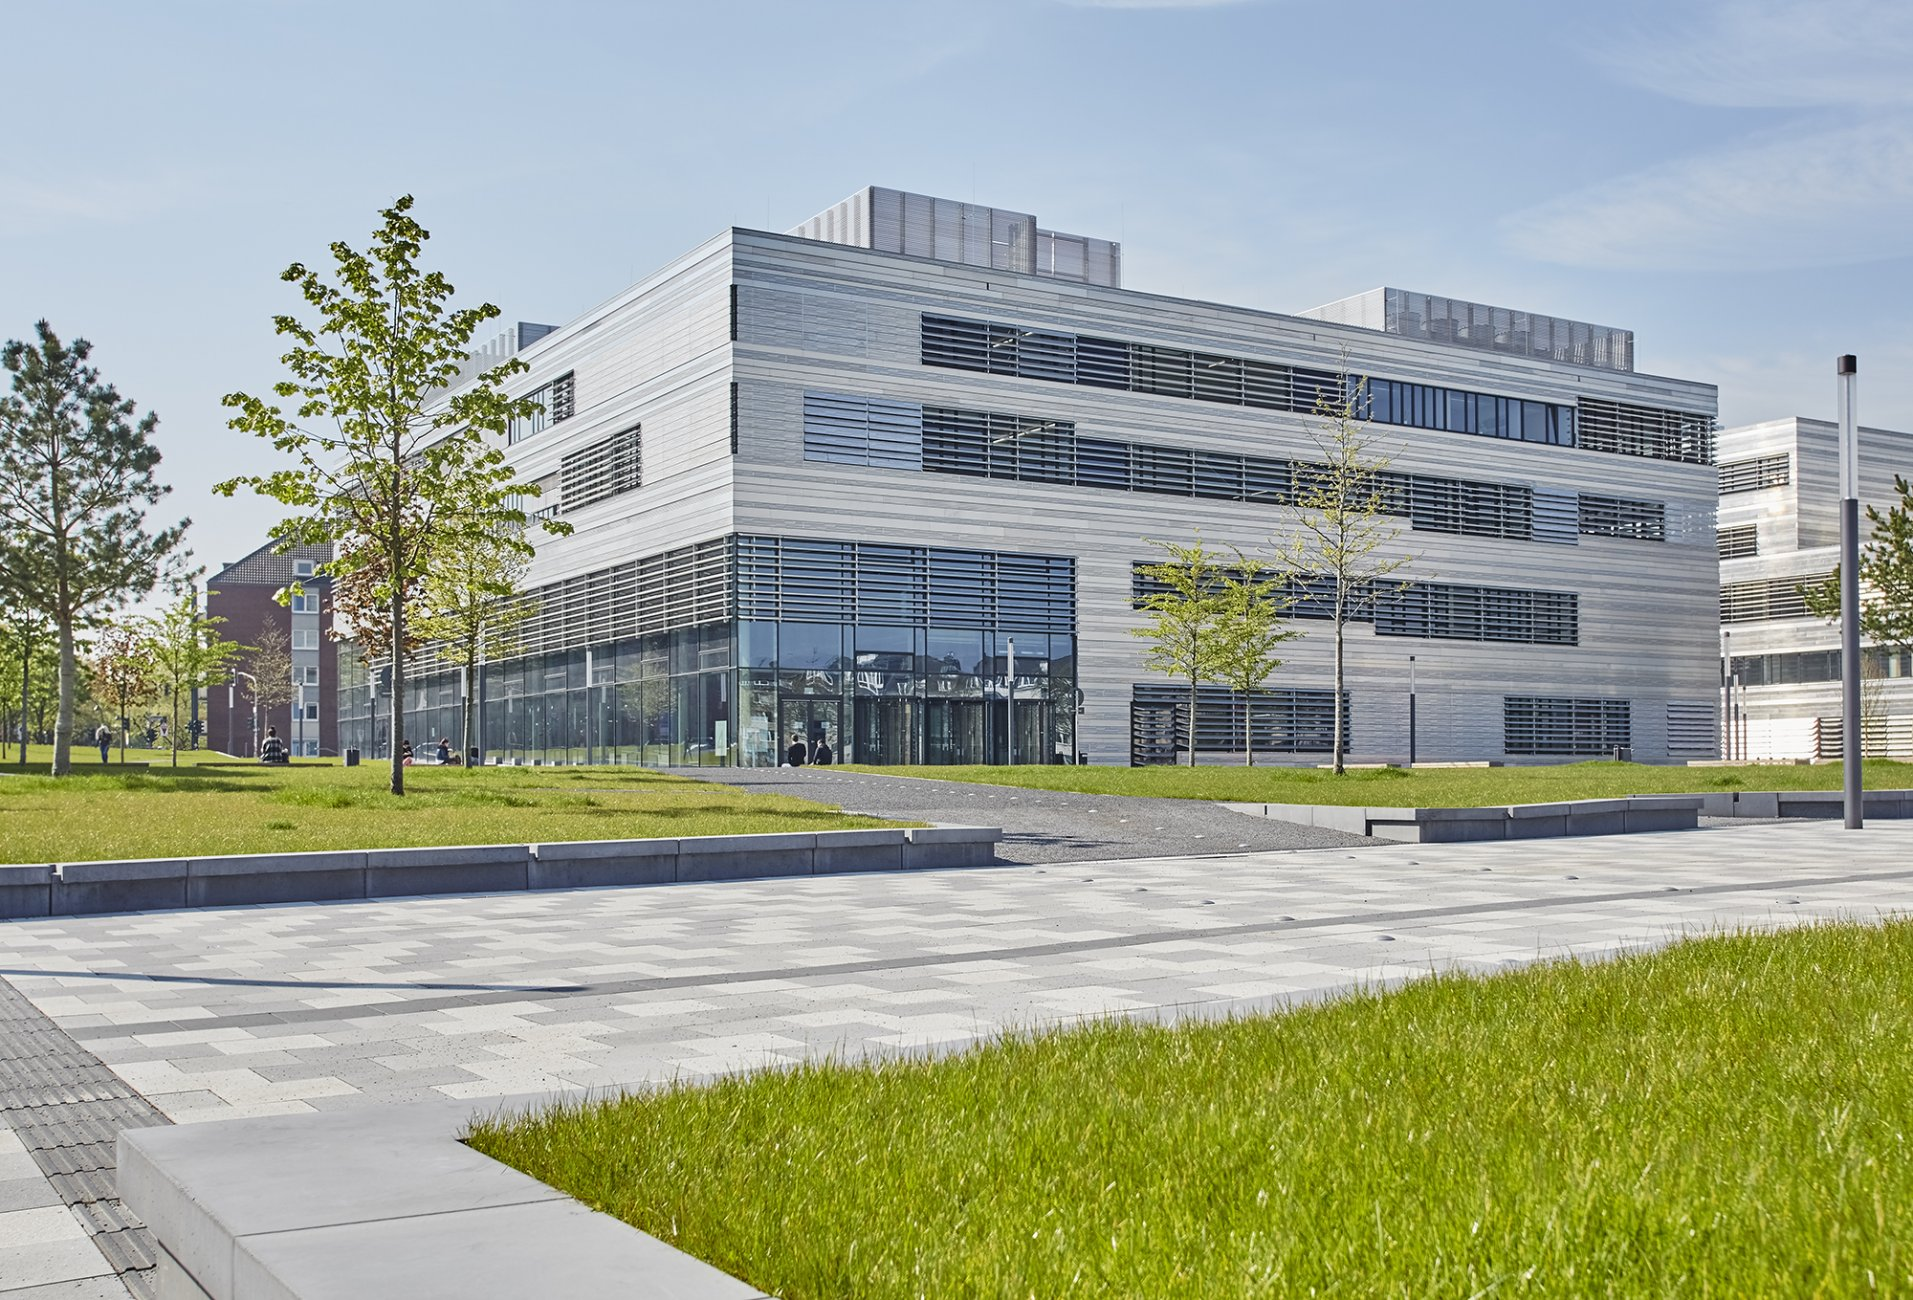 University of Applied Sciences - Campus Derendorf